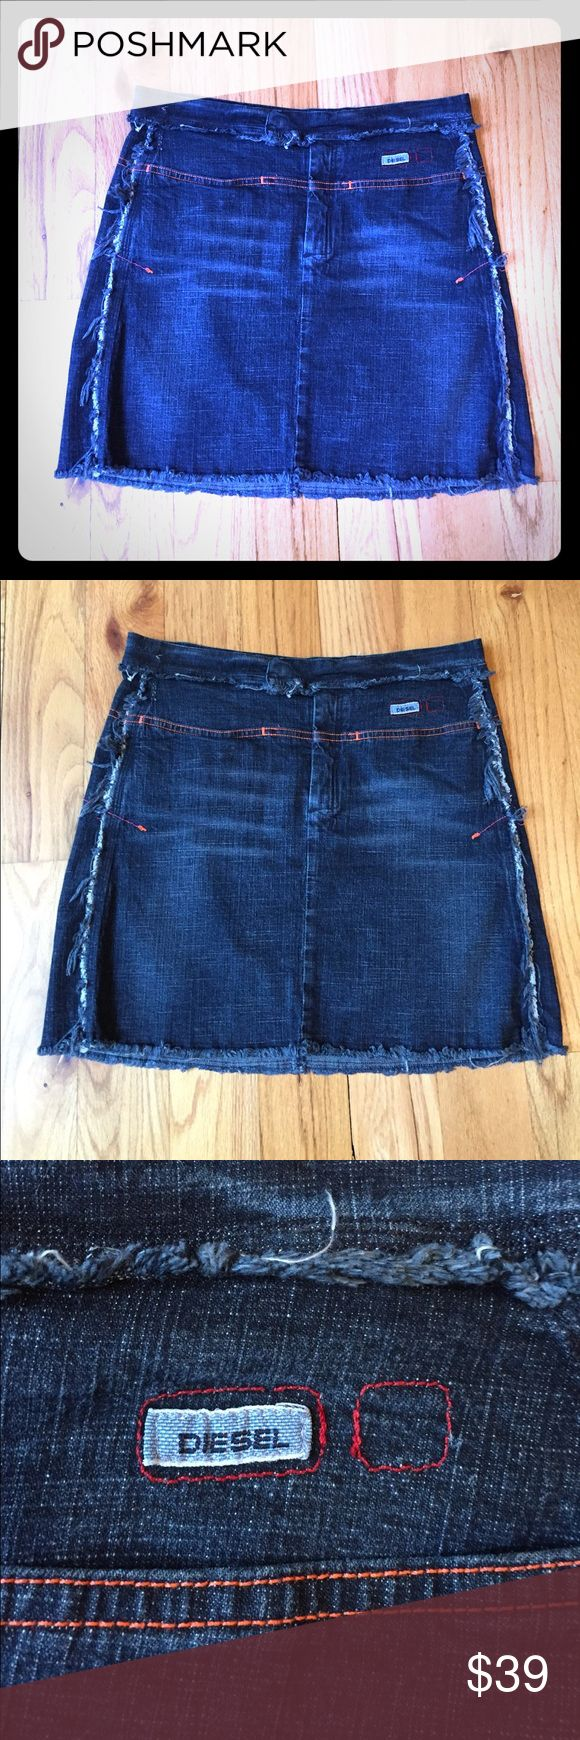 """Diesel distressed denim jean miniskirt size 29 Worn once. Stretch denim. Made in Italy. Size 29, or 7/8. Waist 30.5"""" unstretched. Hips 38"""" unstretched. Length 15"""". Diesel Skirts Mini"""